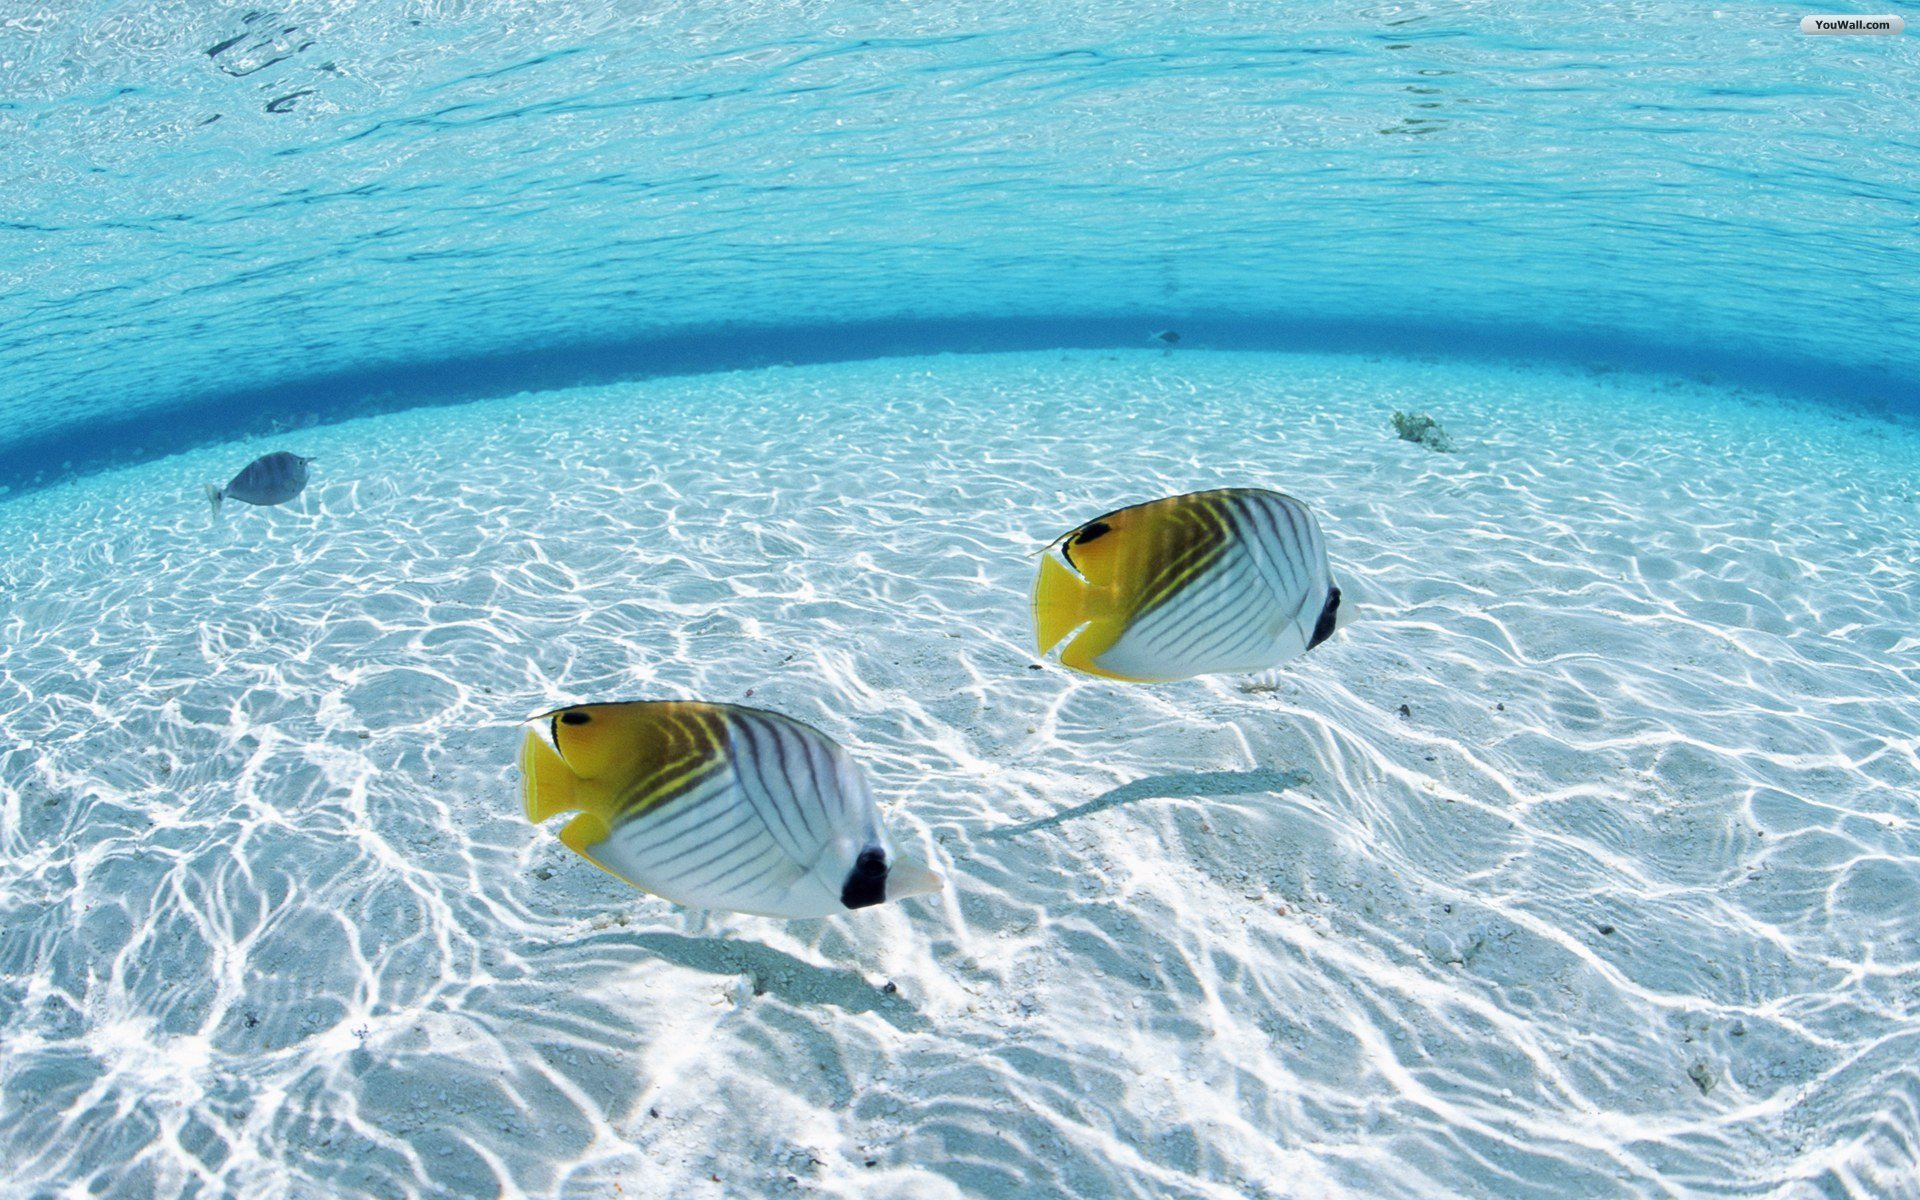 fish in water wallpaper wallpapersafari